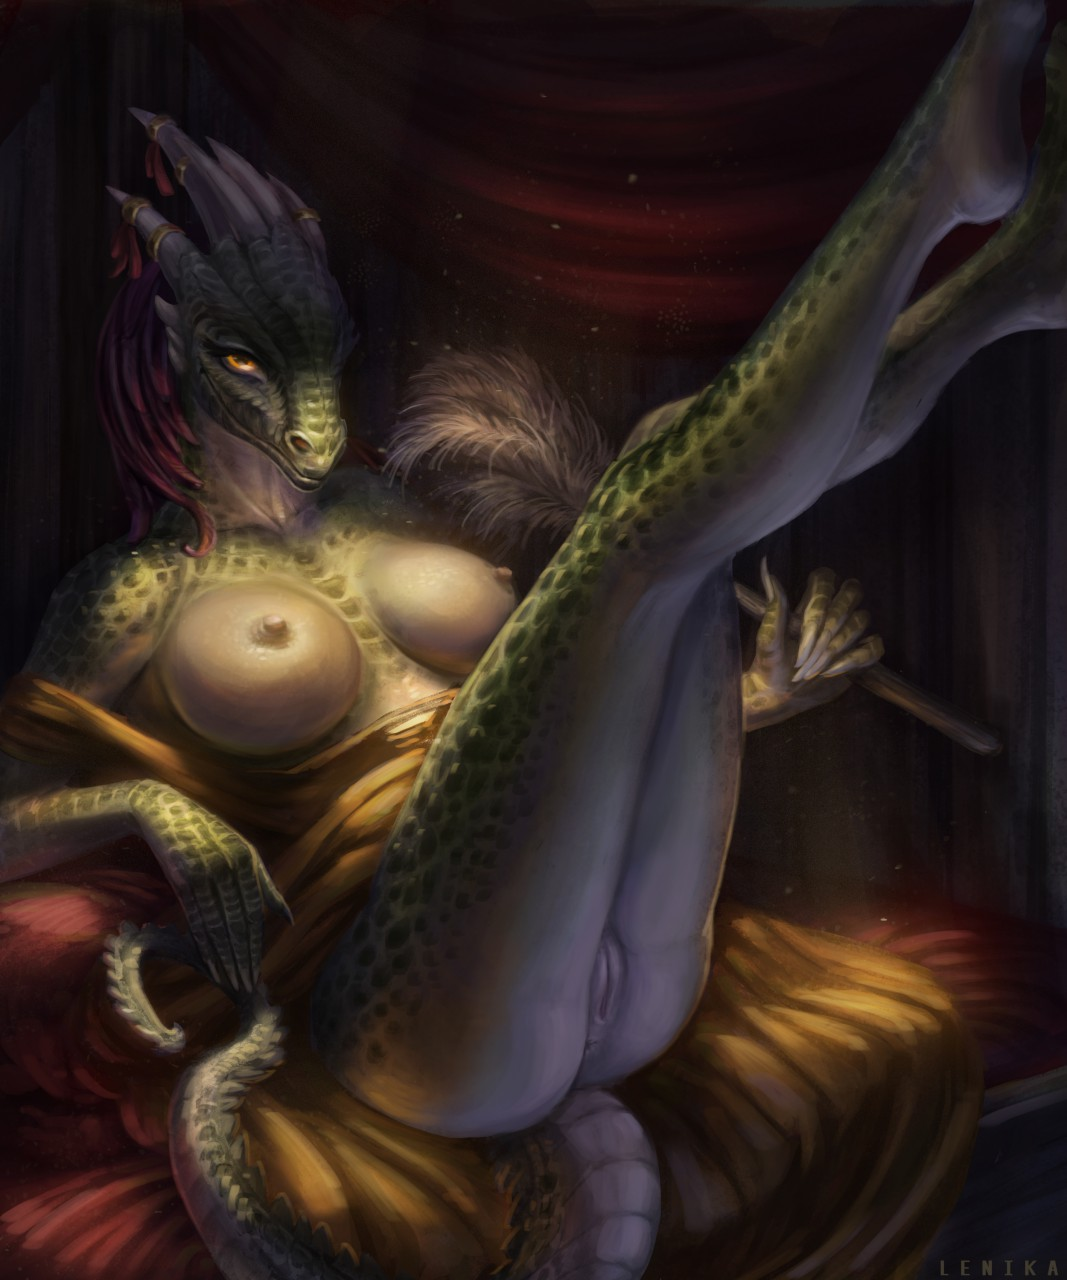 maid locations lusty the argonian skyrim Grim adventures of billy and mandy malaria